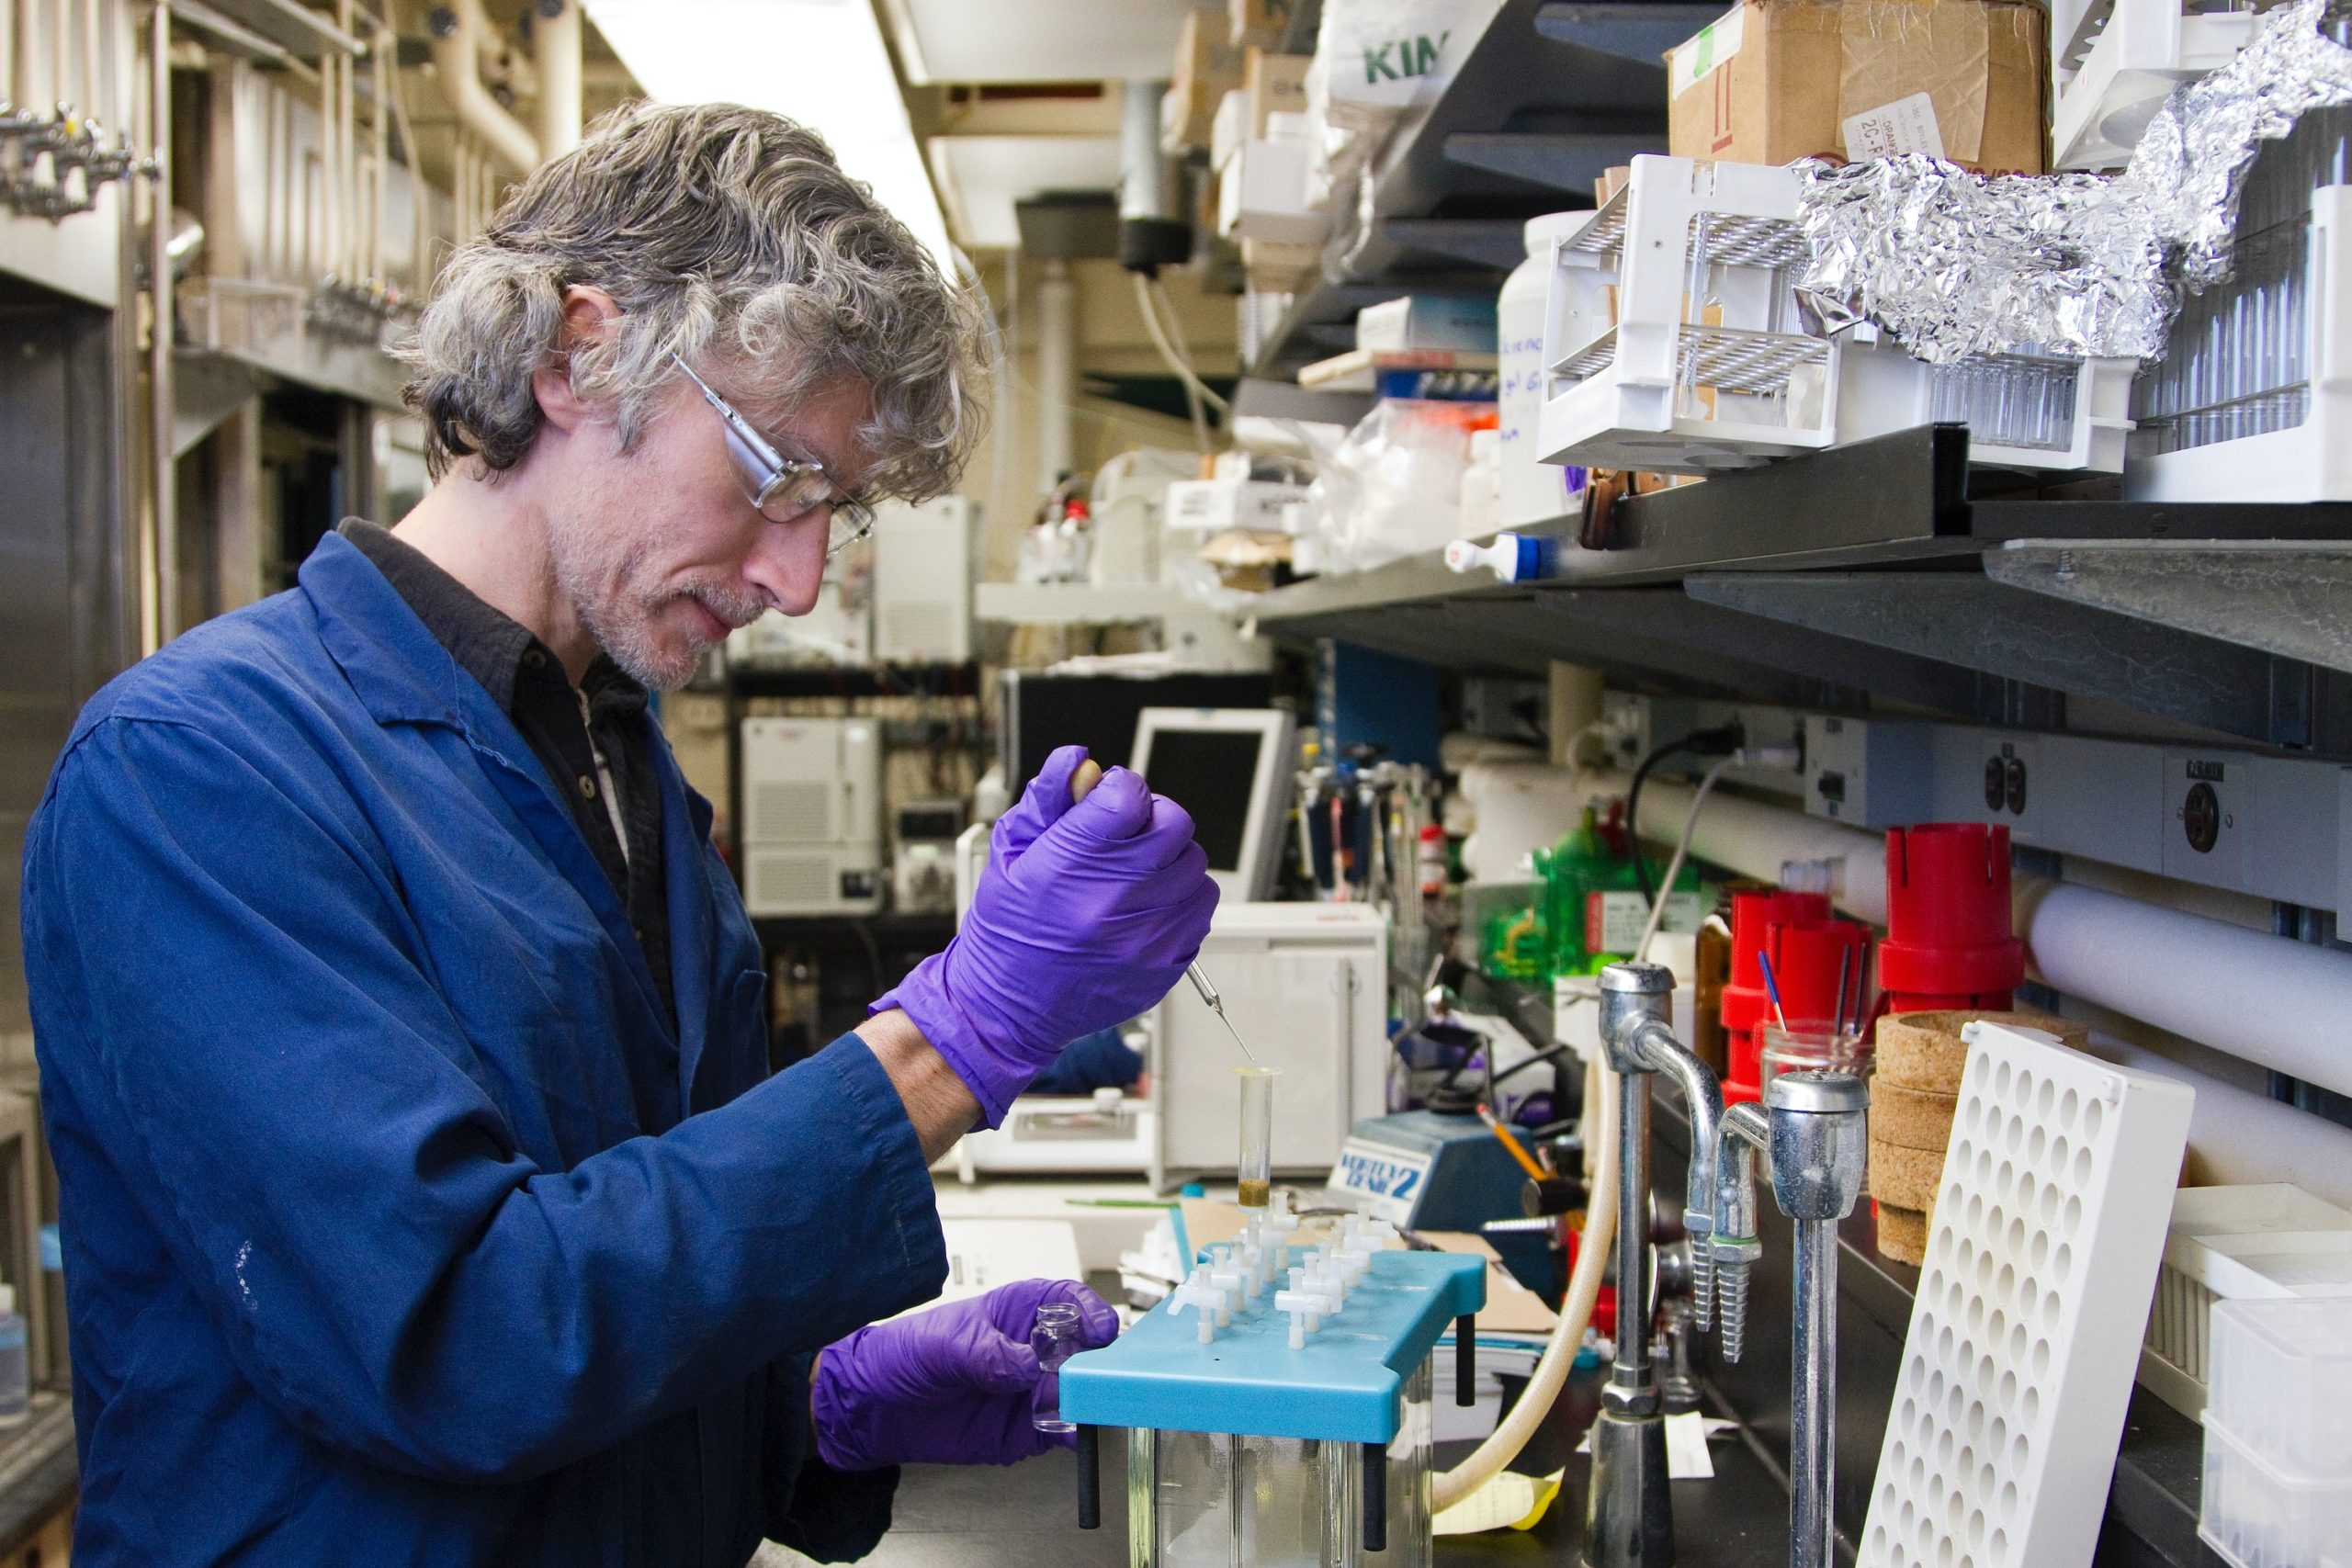 How Today's Science is Making a Difference in Genetic Disorders